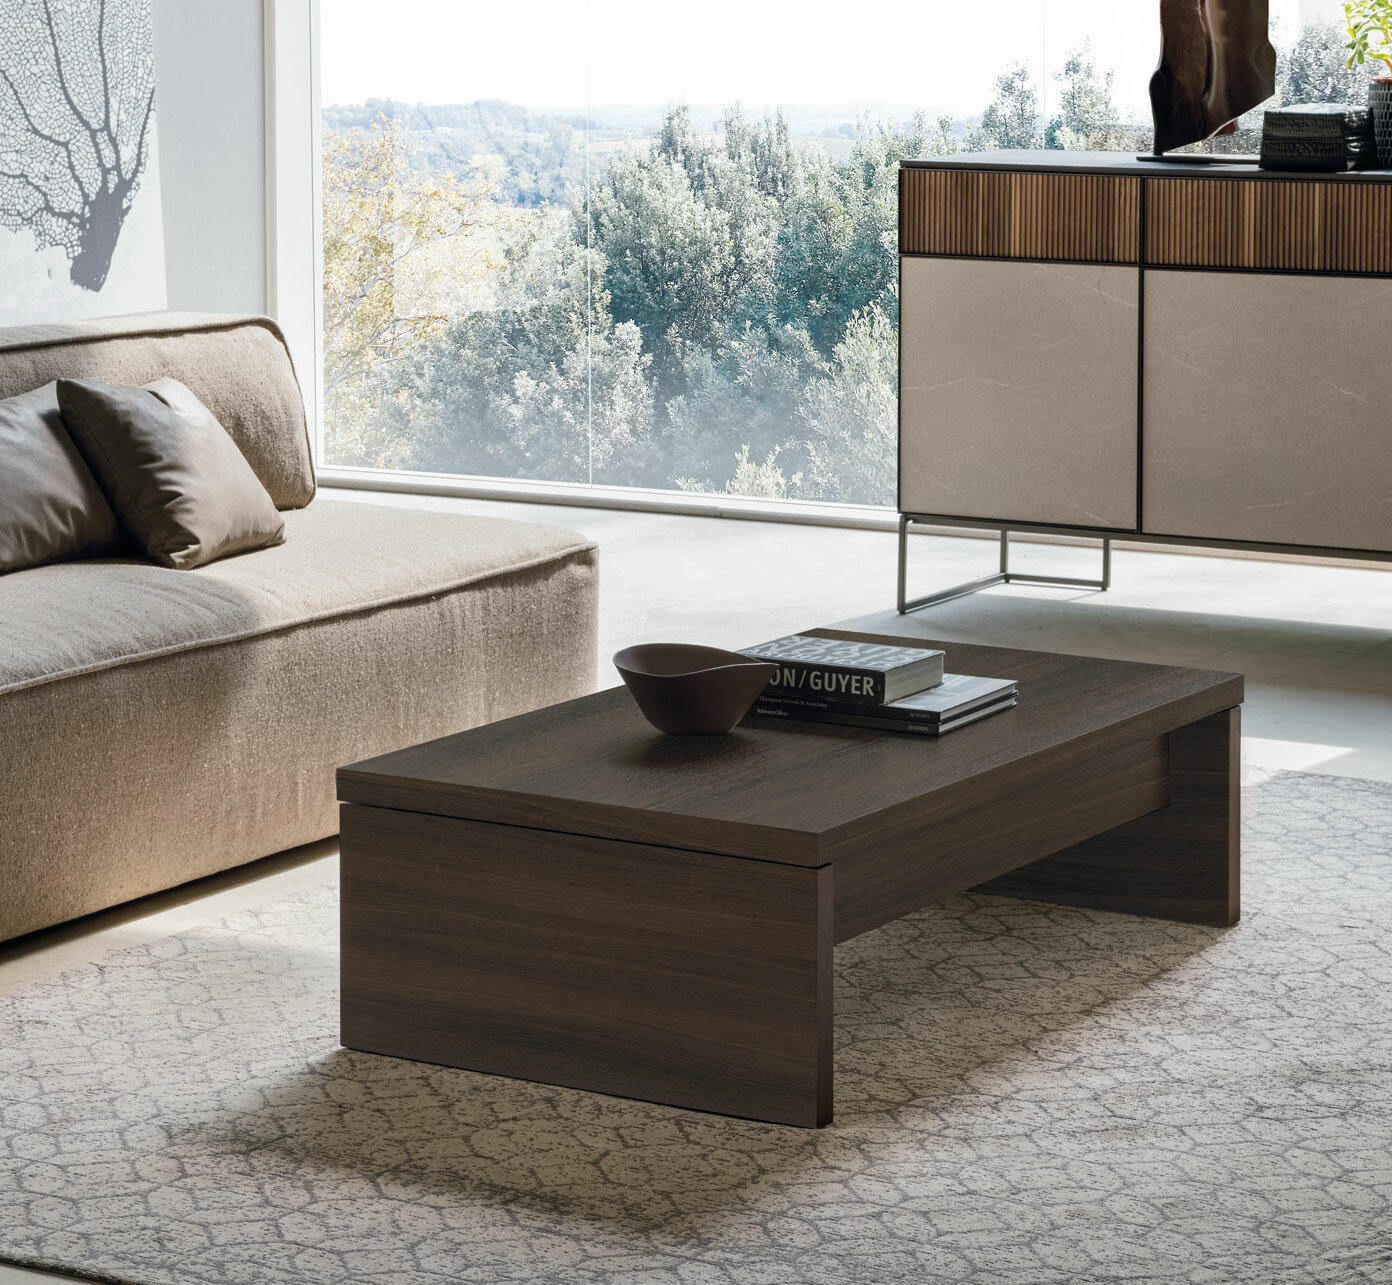 Yumanmod Cosmo Lift Top Extendable Sled Coffee Table With Storage Perigold